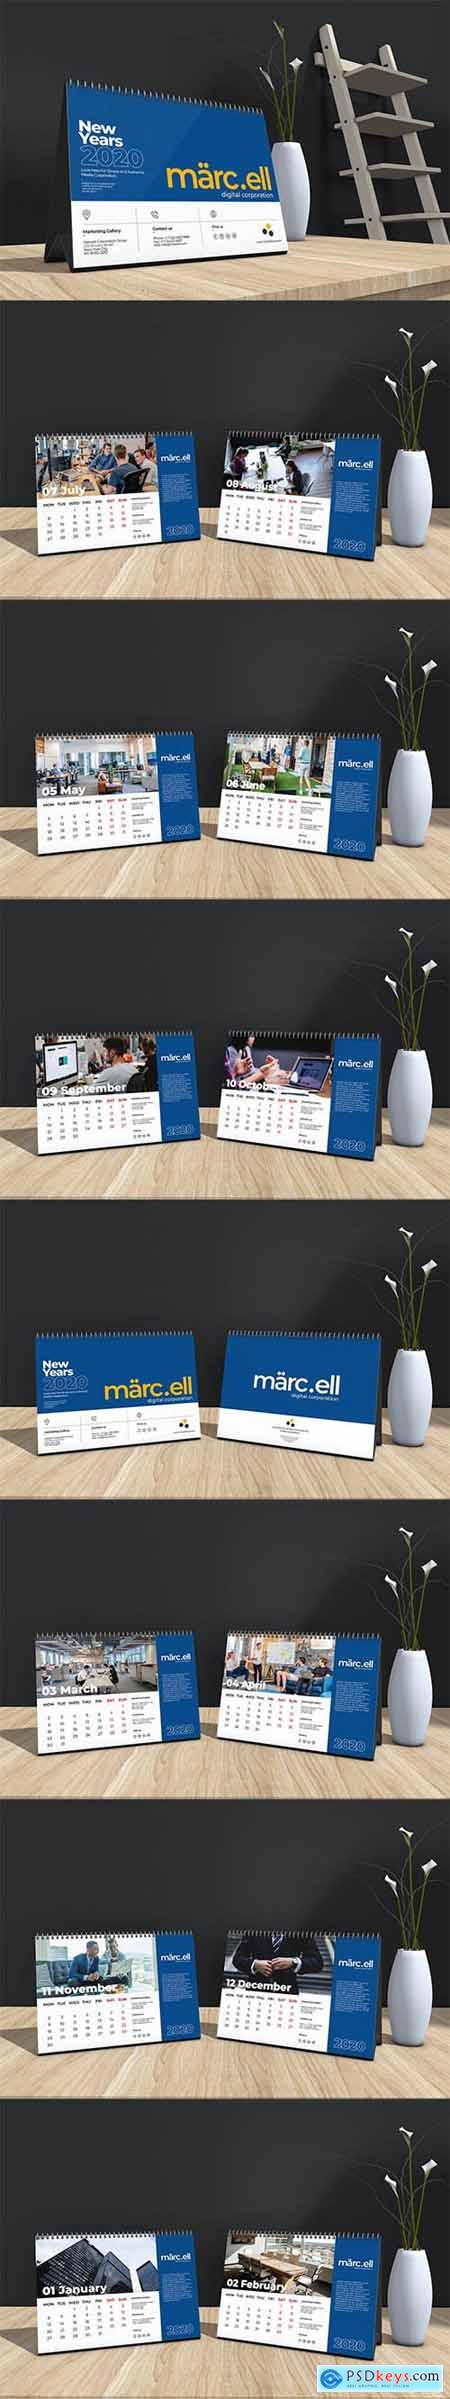 Marcell Corporate Table Calendar 2020